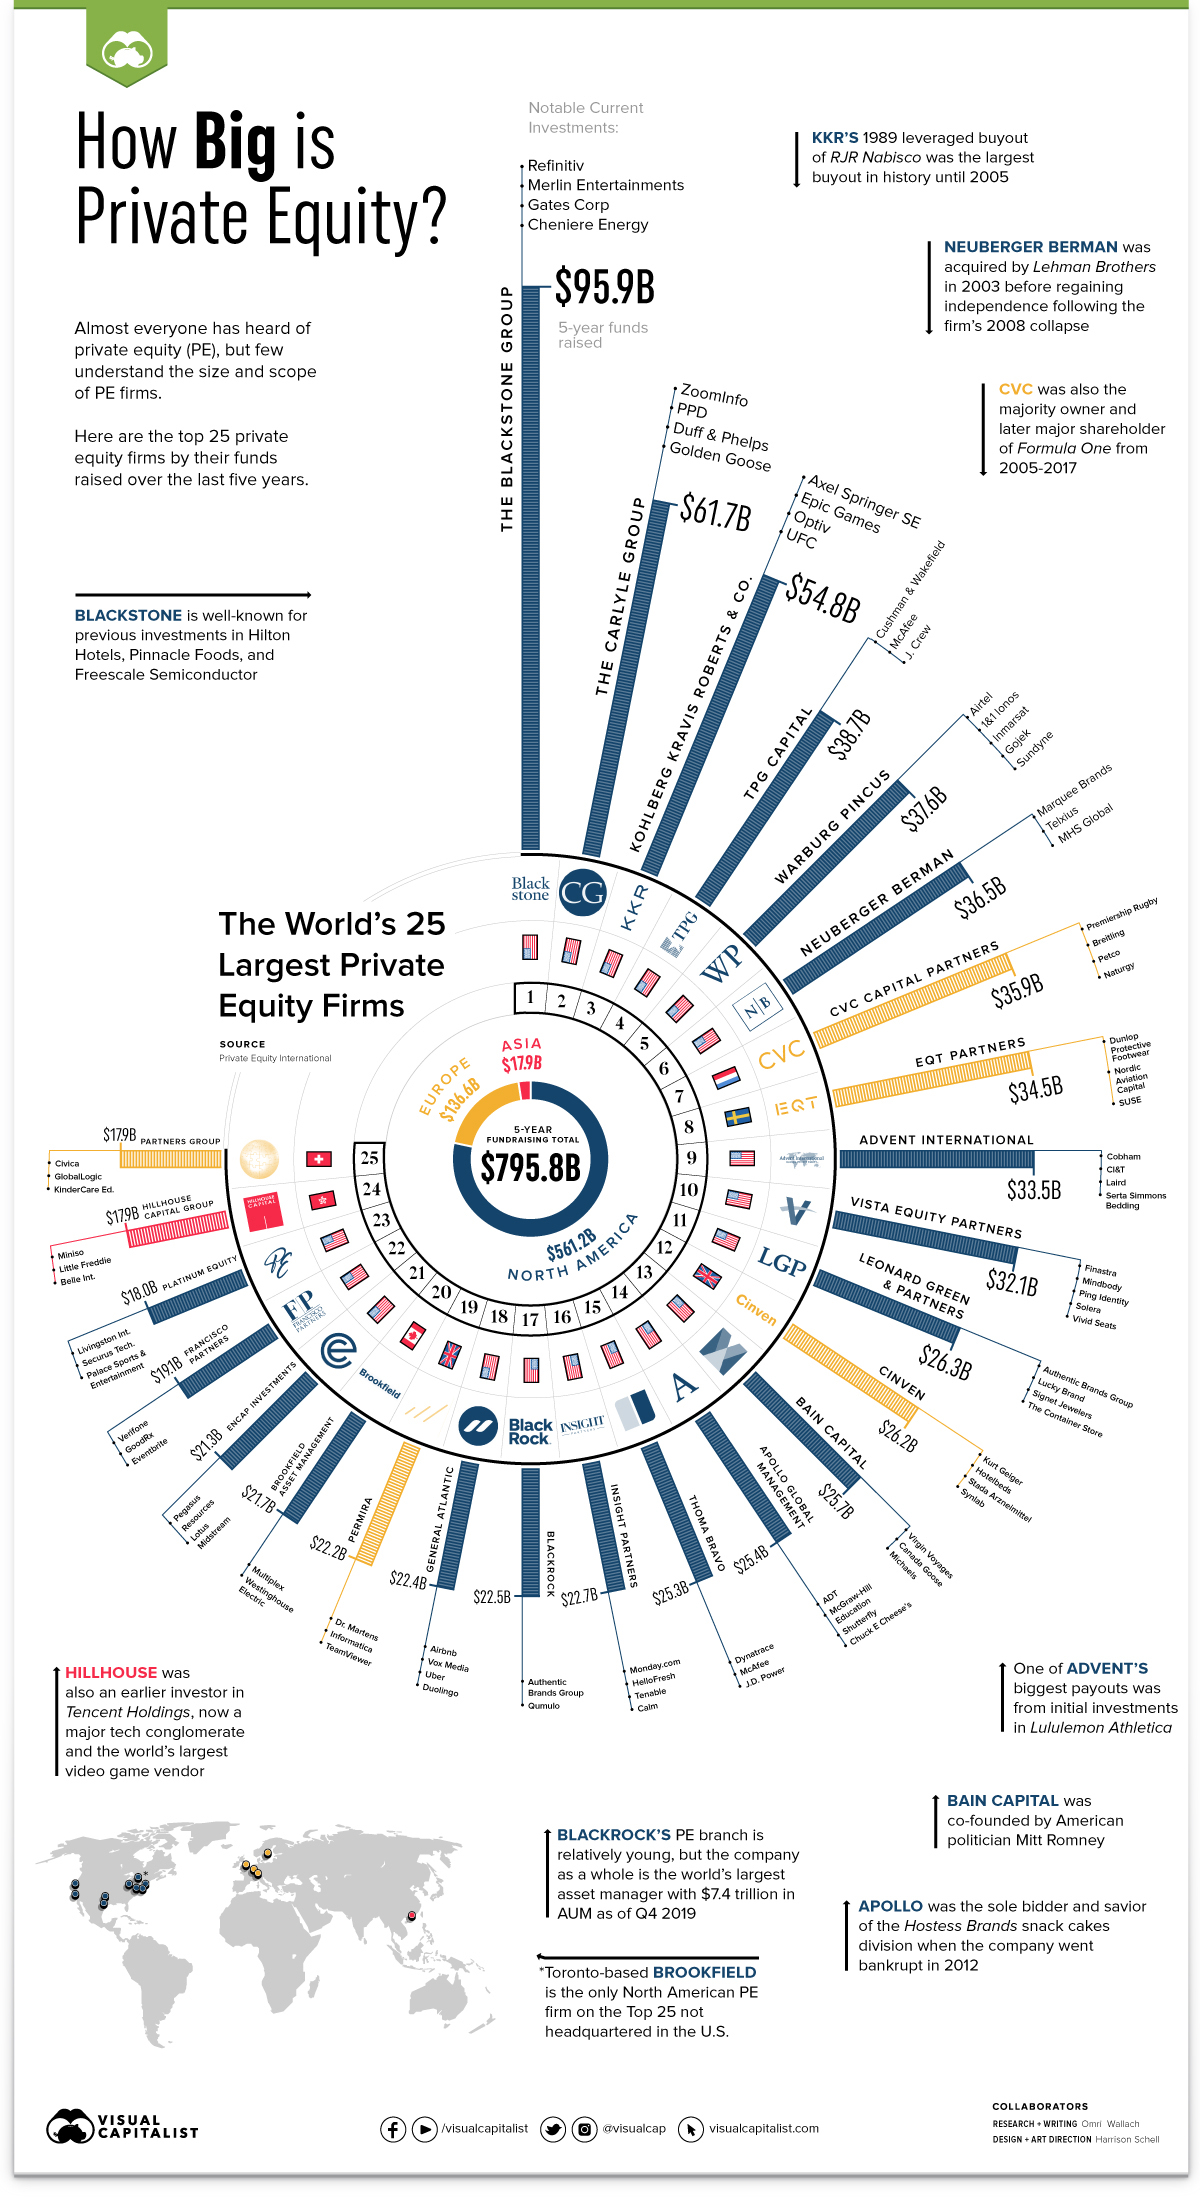 https://www.visualcapitalist.com/wp-content/uploads/2020/11/PrivateEquityTop25-Infographic-8.jpg